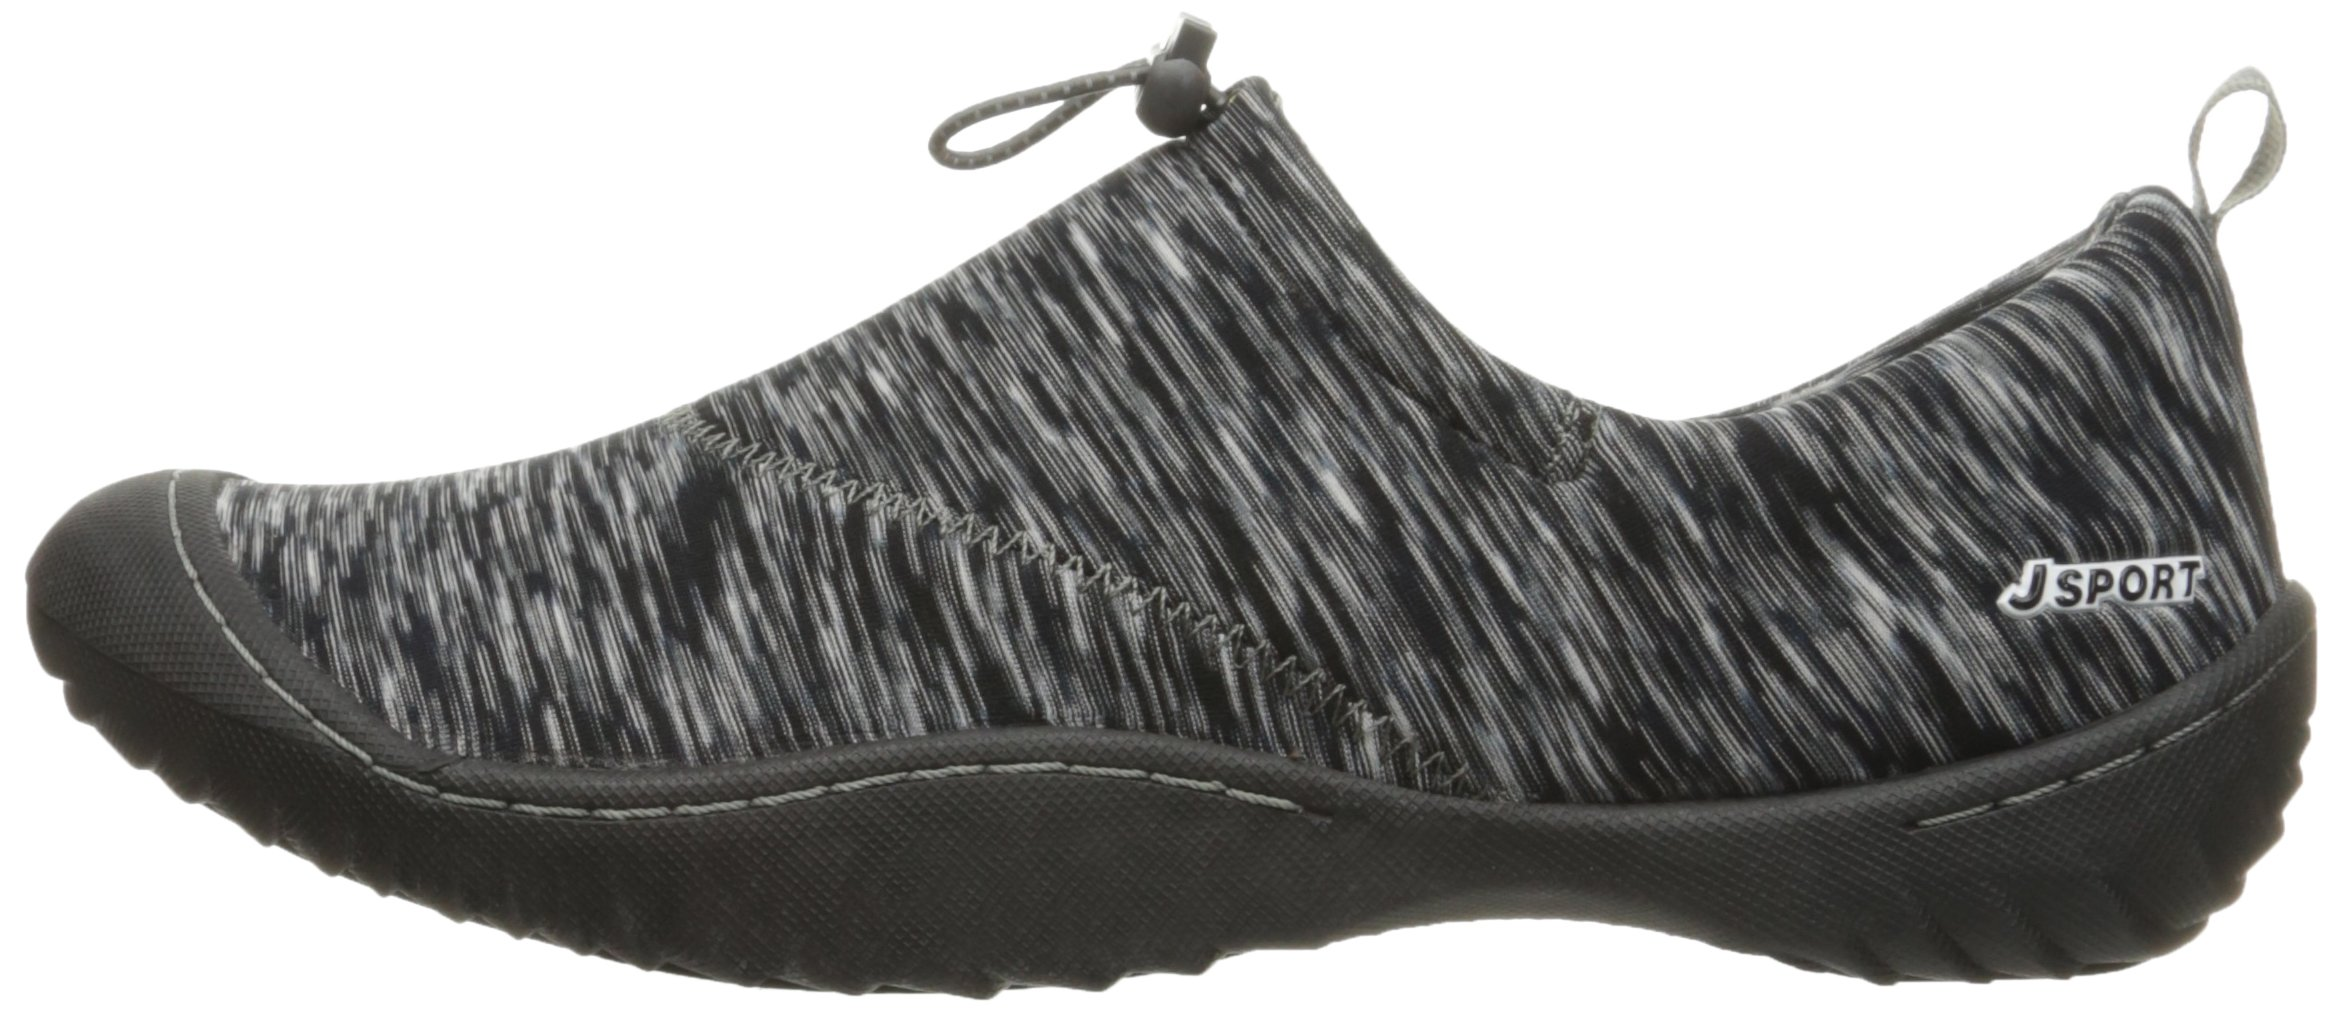 JSport by Jambu Women's Clare Walking Shoe, Black/Multi, 7 M US by JSport by Jambu (Image #5)